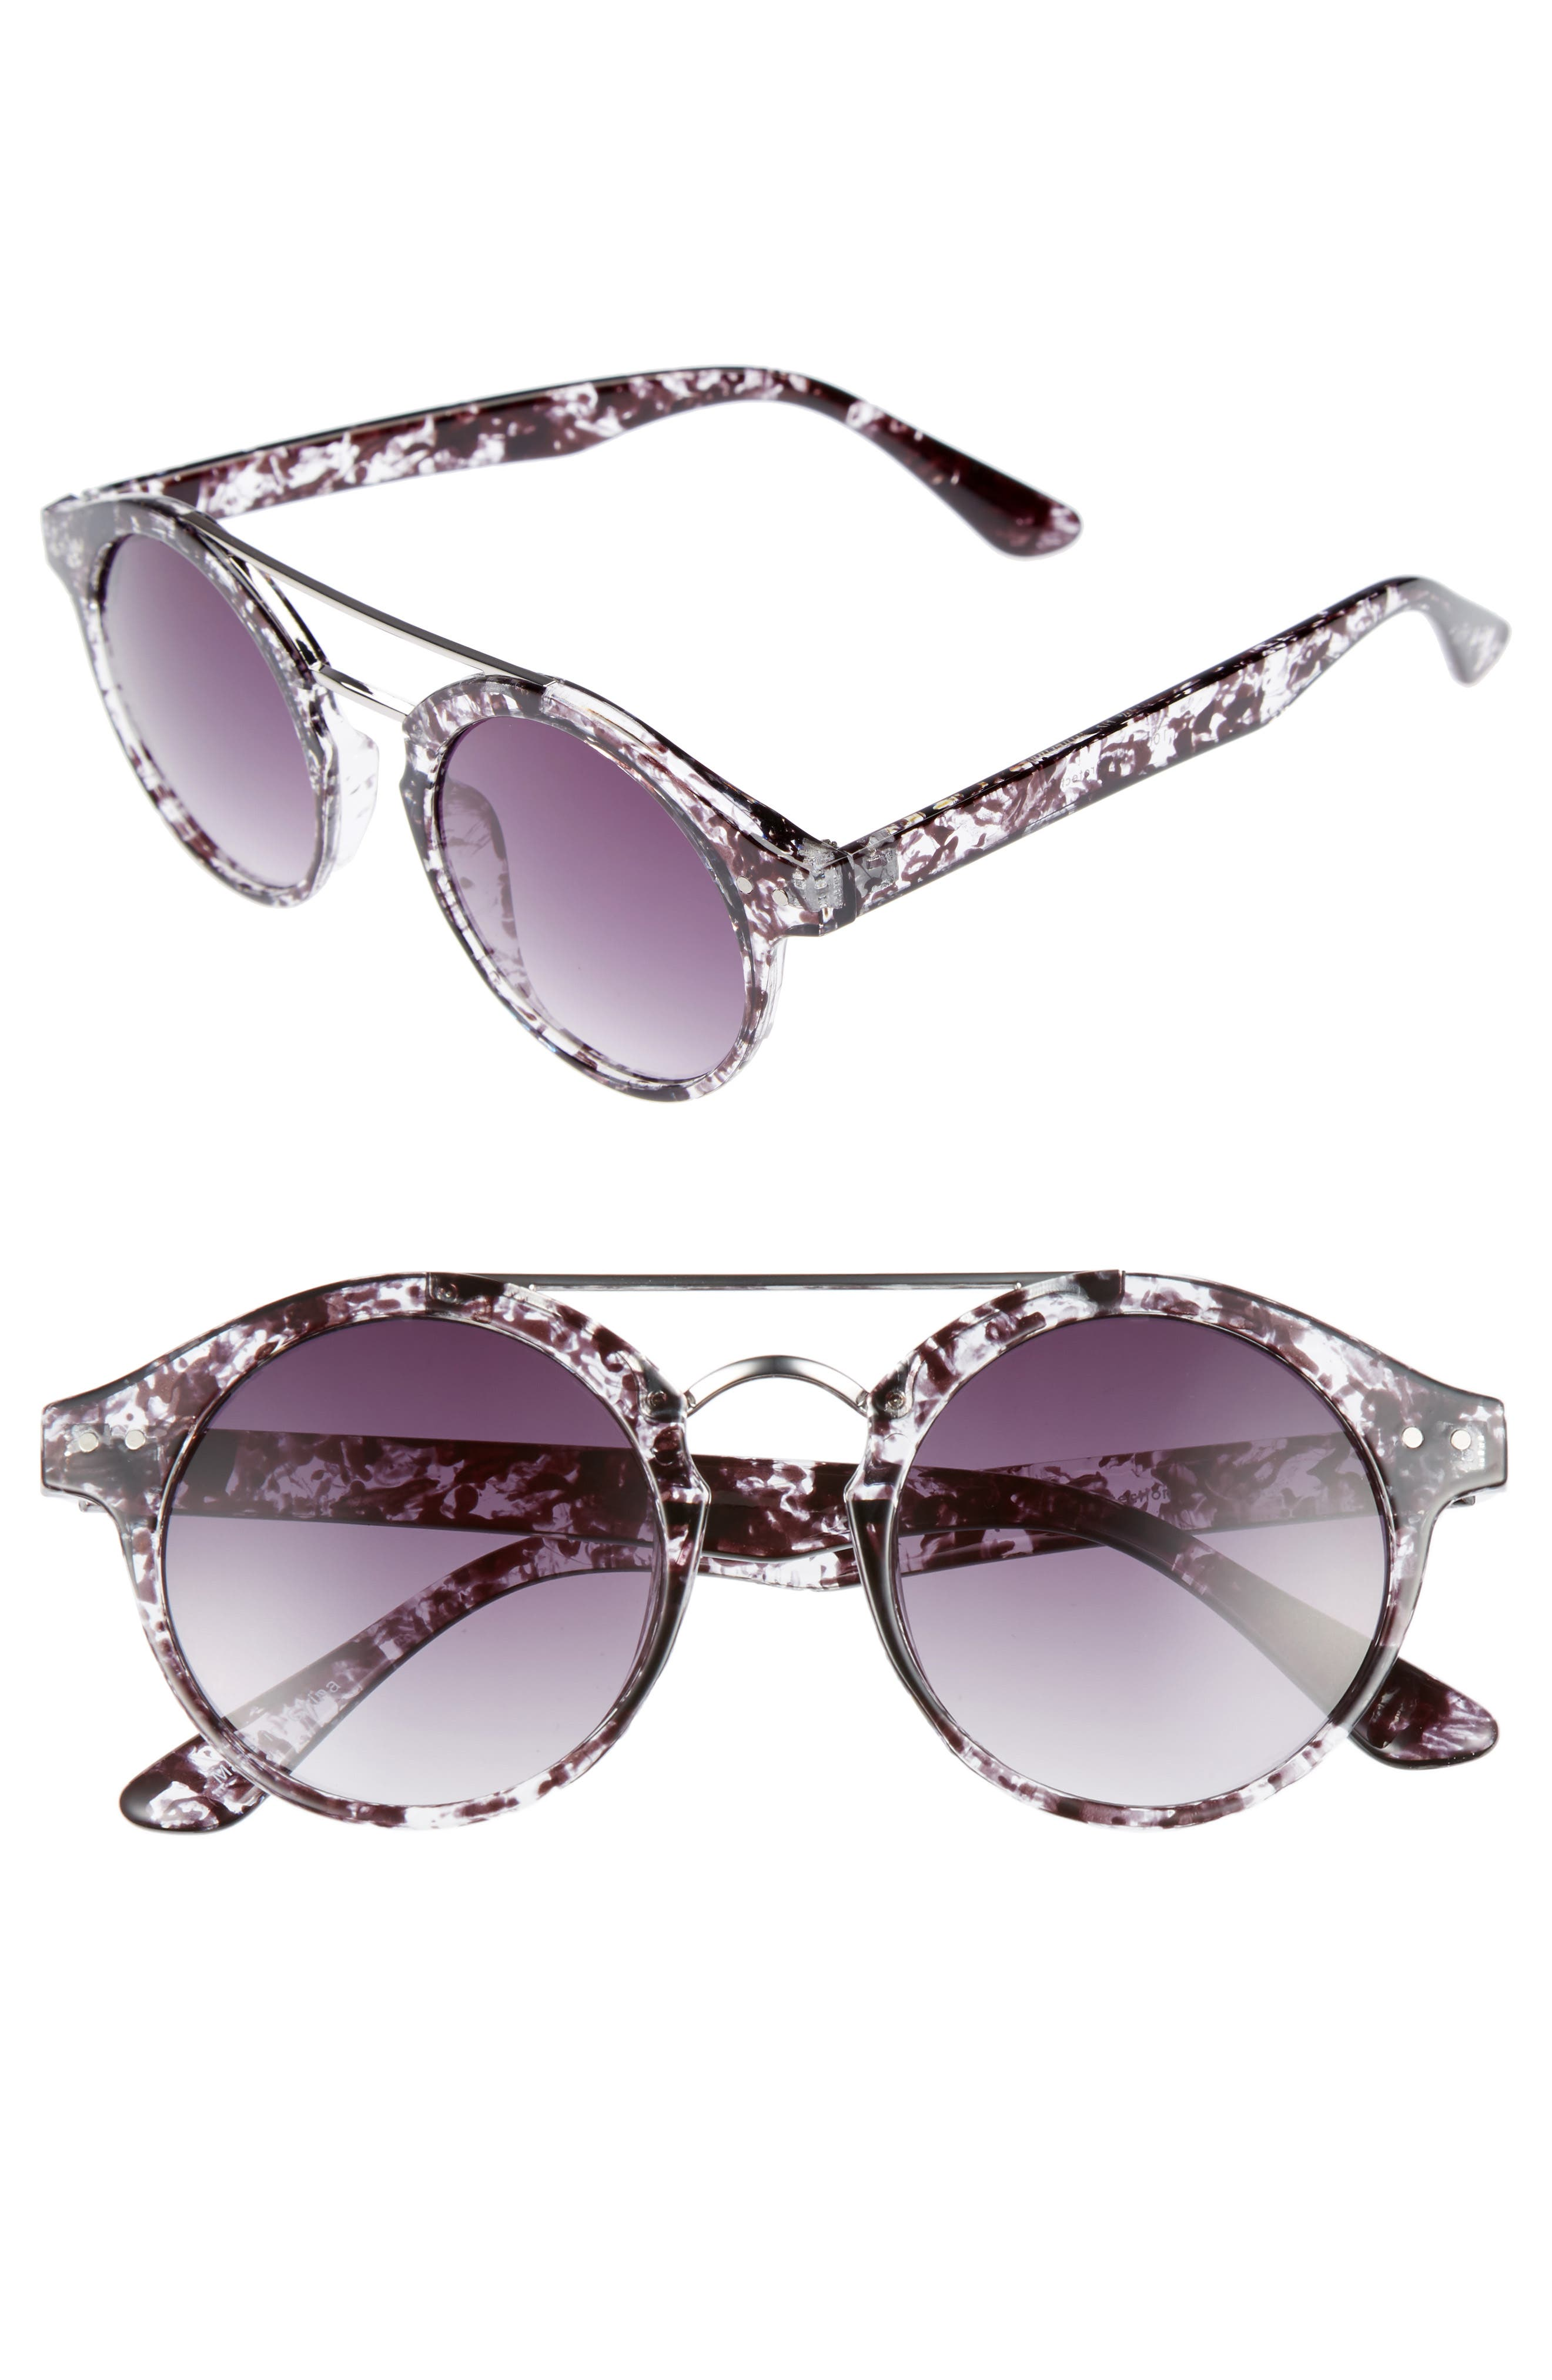 45mm Round Sunglasses,                         Main,                         color, Marble